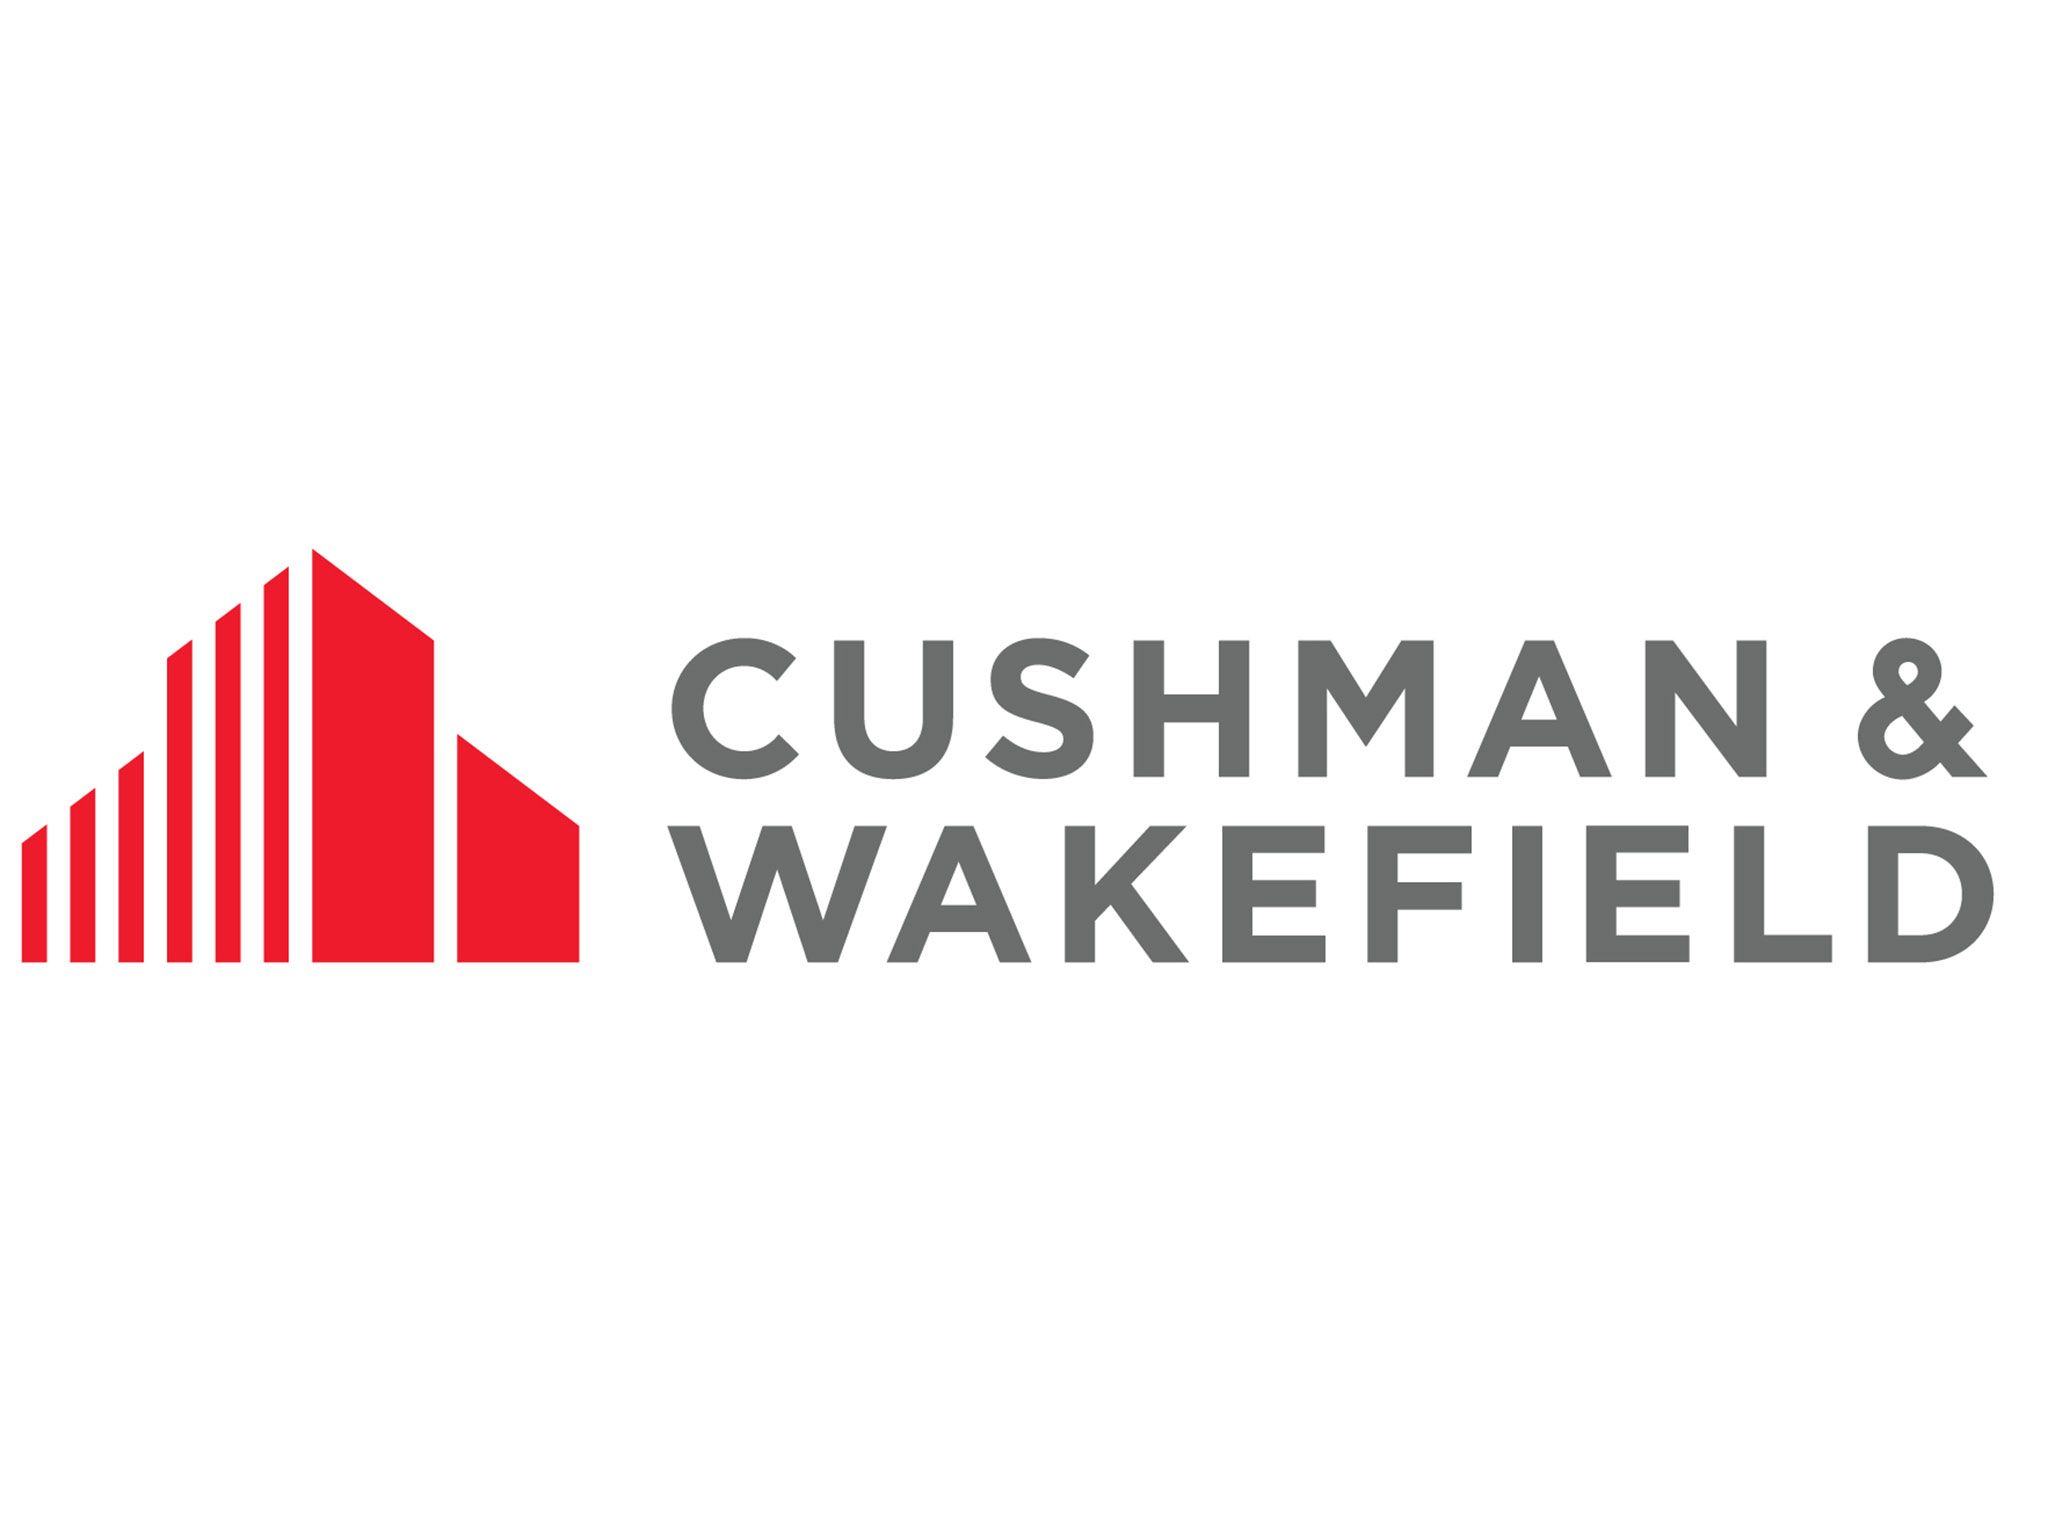 MetaProp Announces $40 Million Fund Closing, Cushman & Wakefield is Largest CRE Provider   June 21, 2018